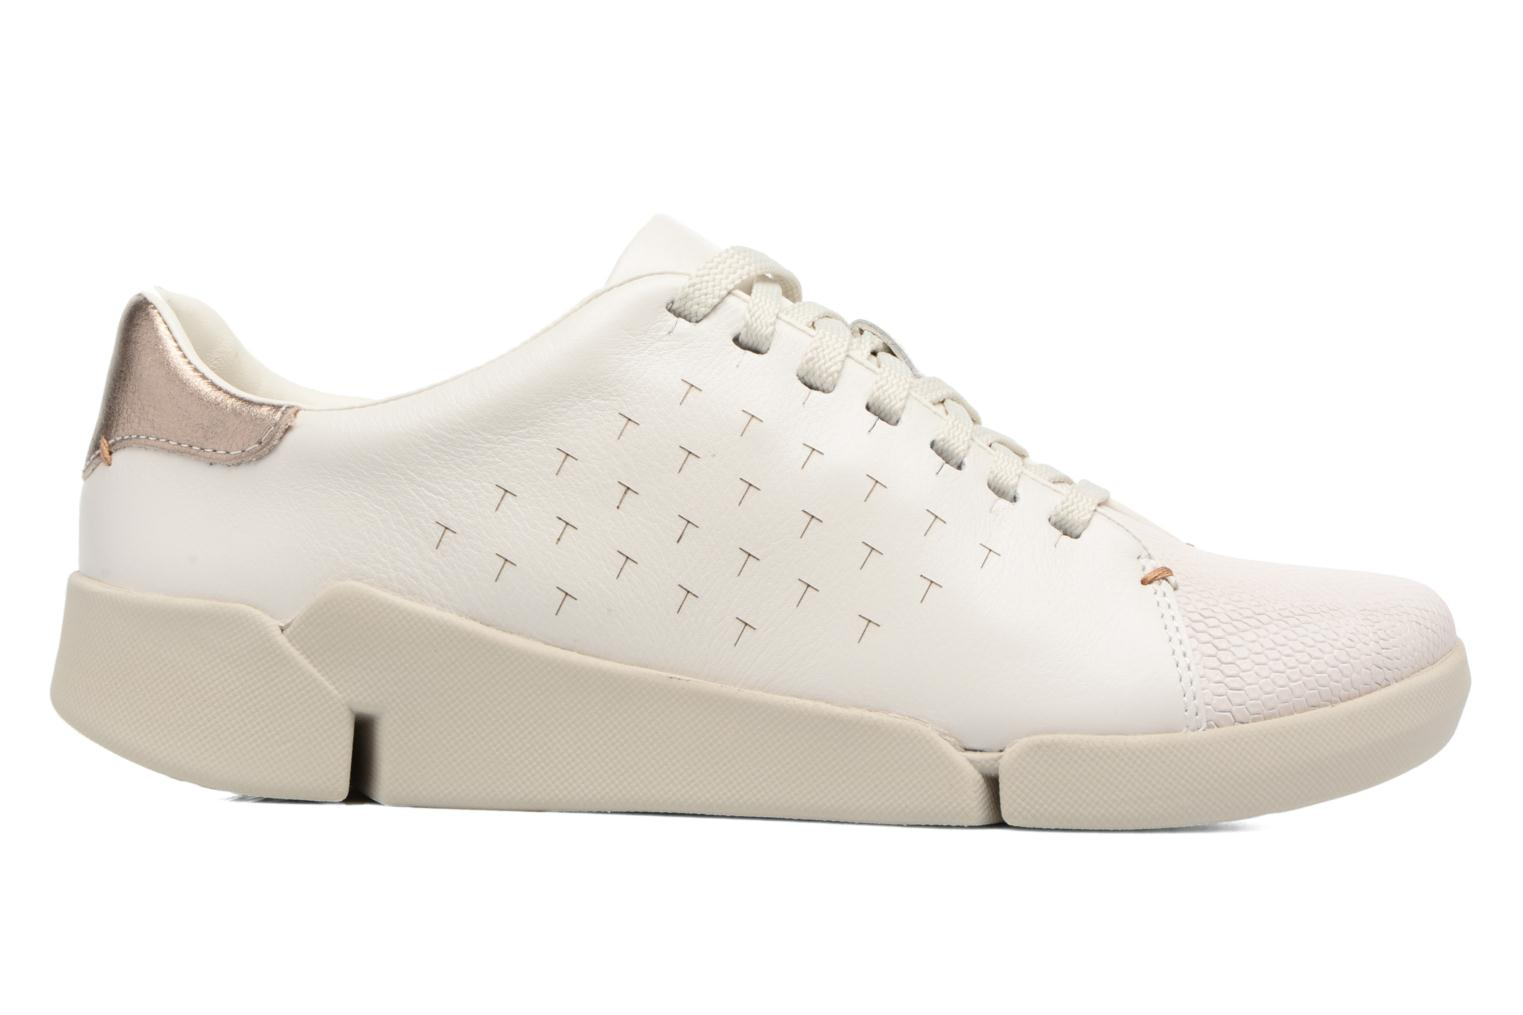 Tri Abby White leather